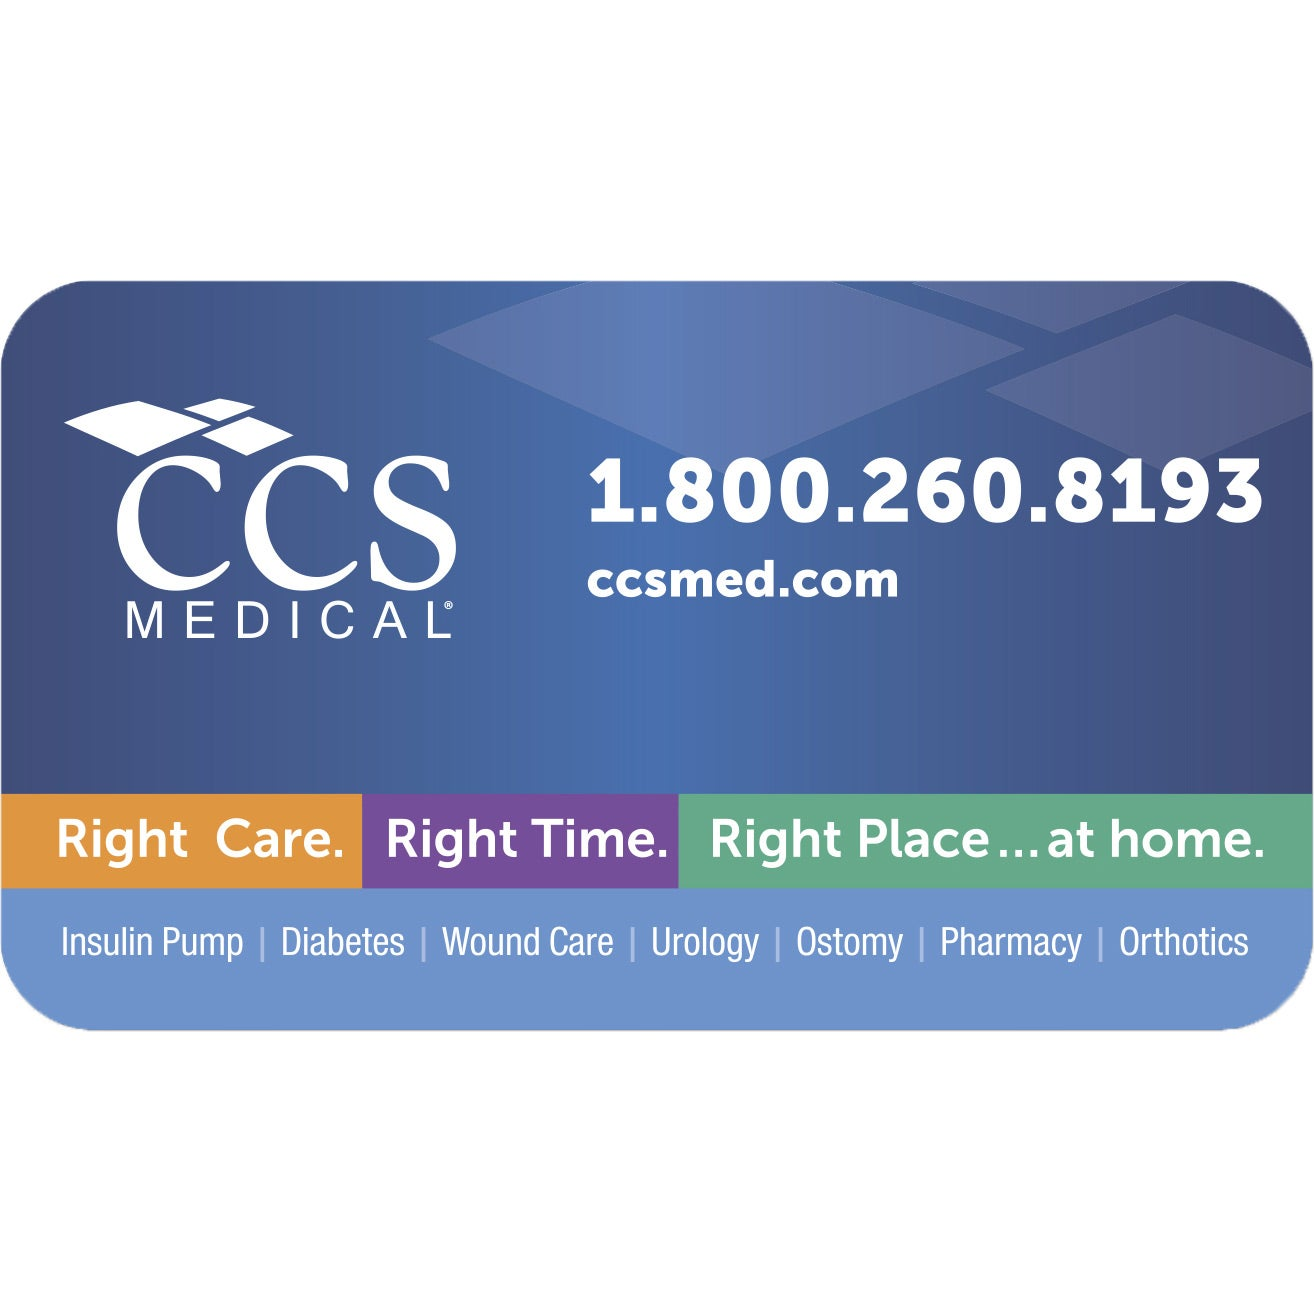 Promotional 020 Thickness Business Card Rounded Corners Magnets